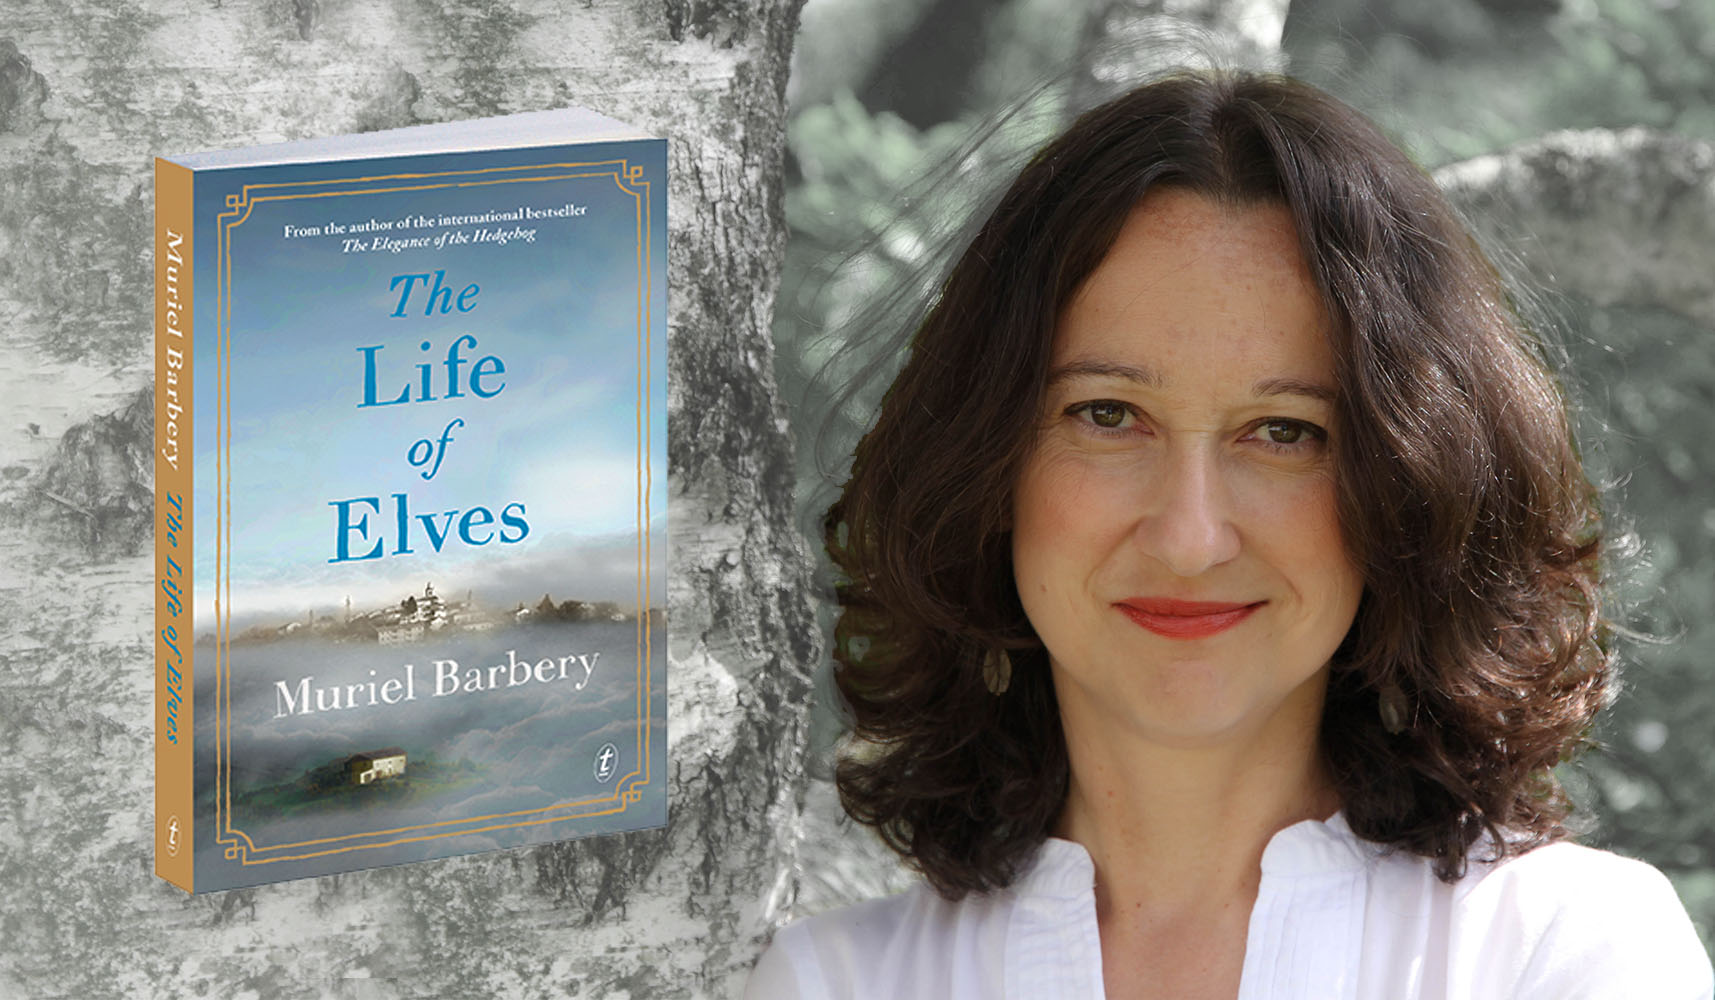 Muriel Barbery and The Life of Elves